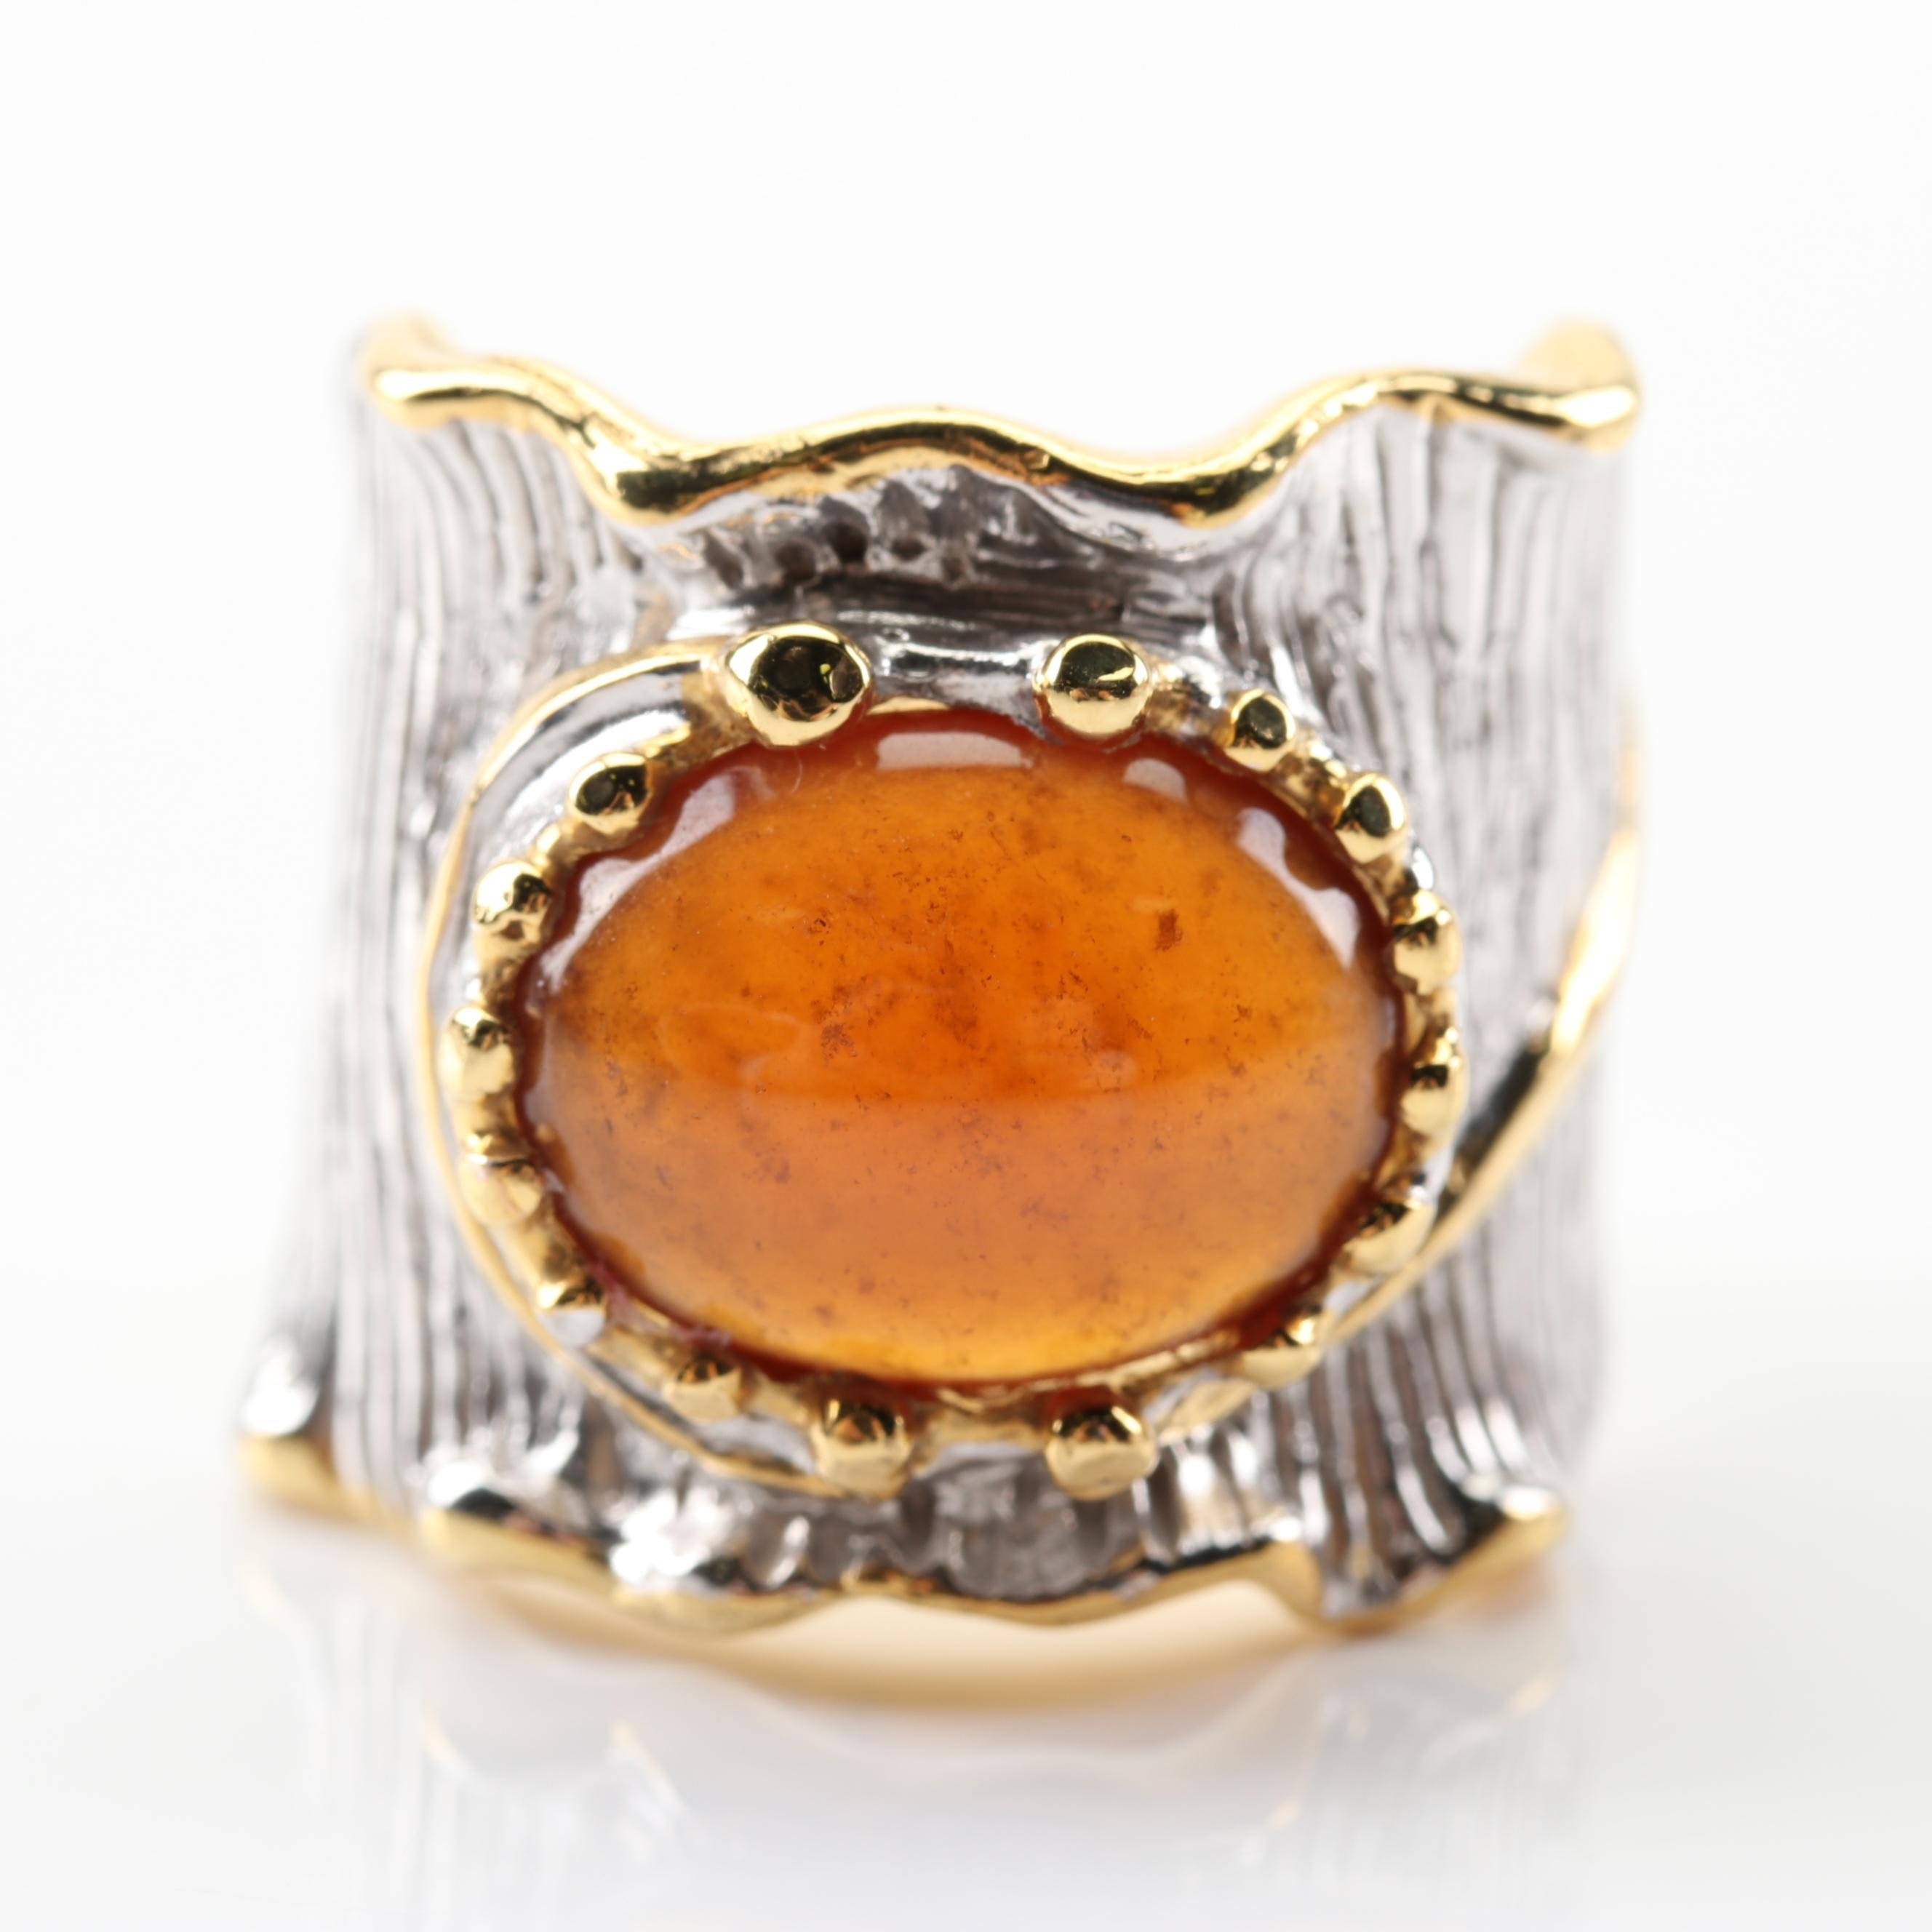 Sterling Silver 7.88 CT Garnet Ring With Gold Wash Accents